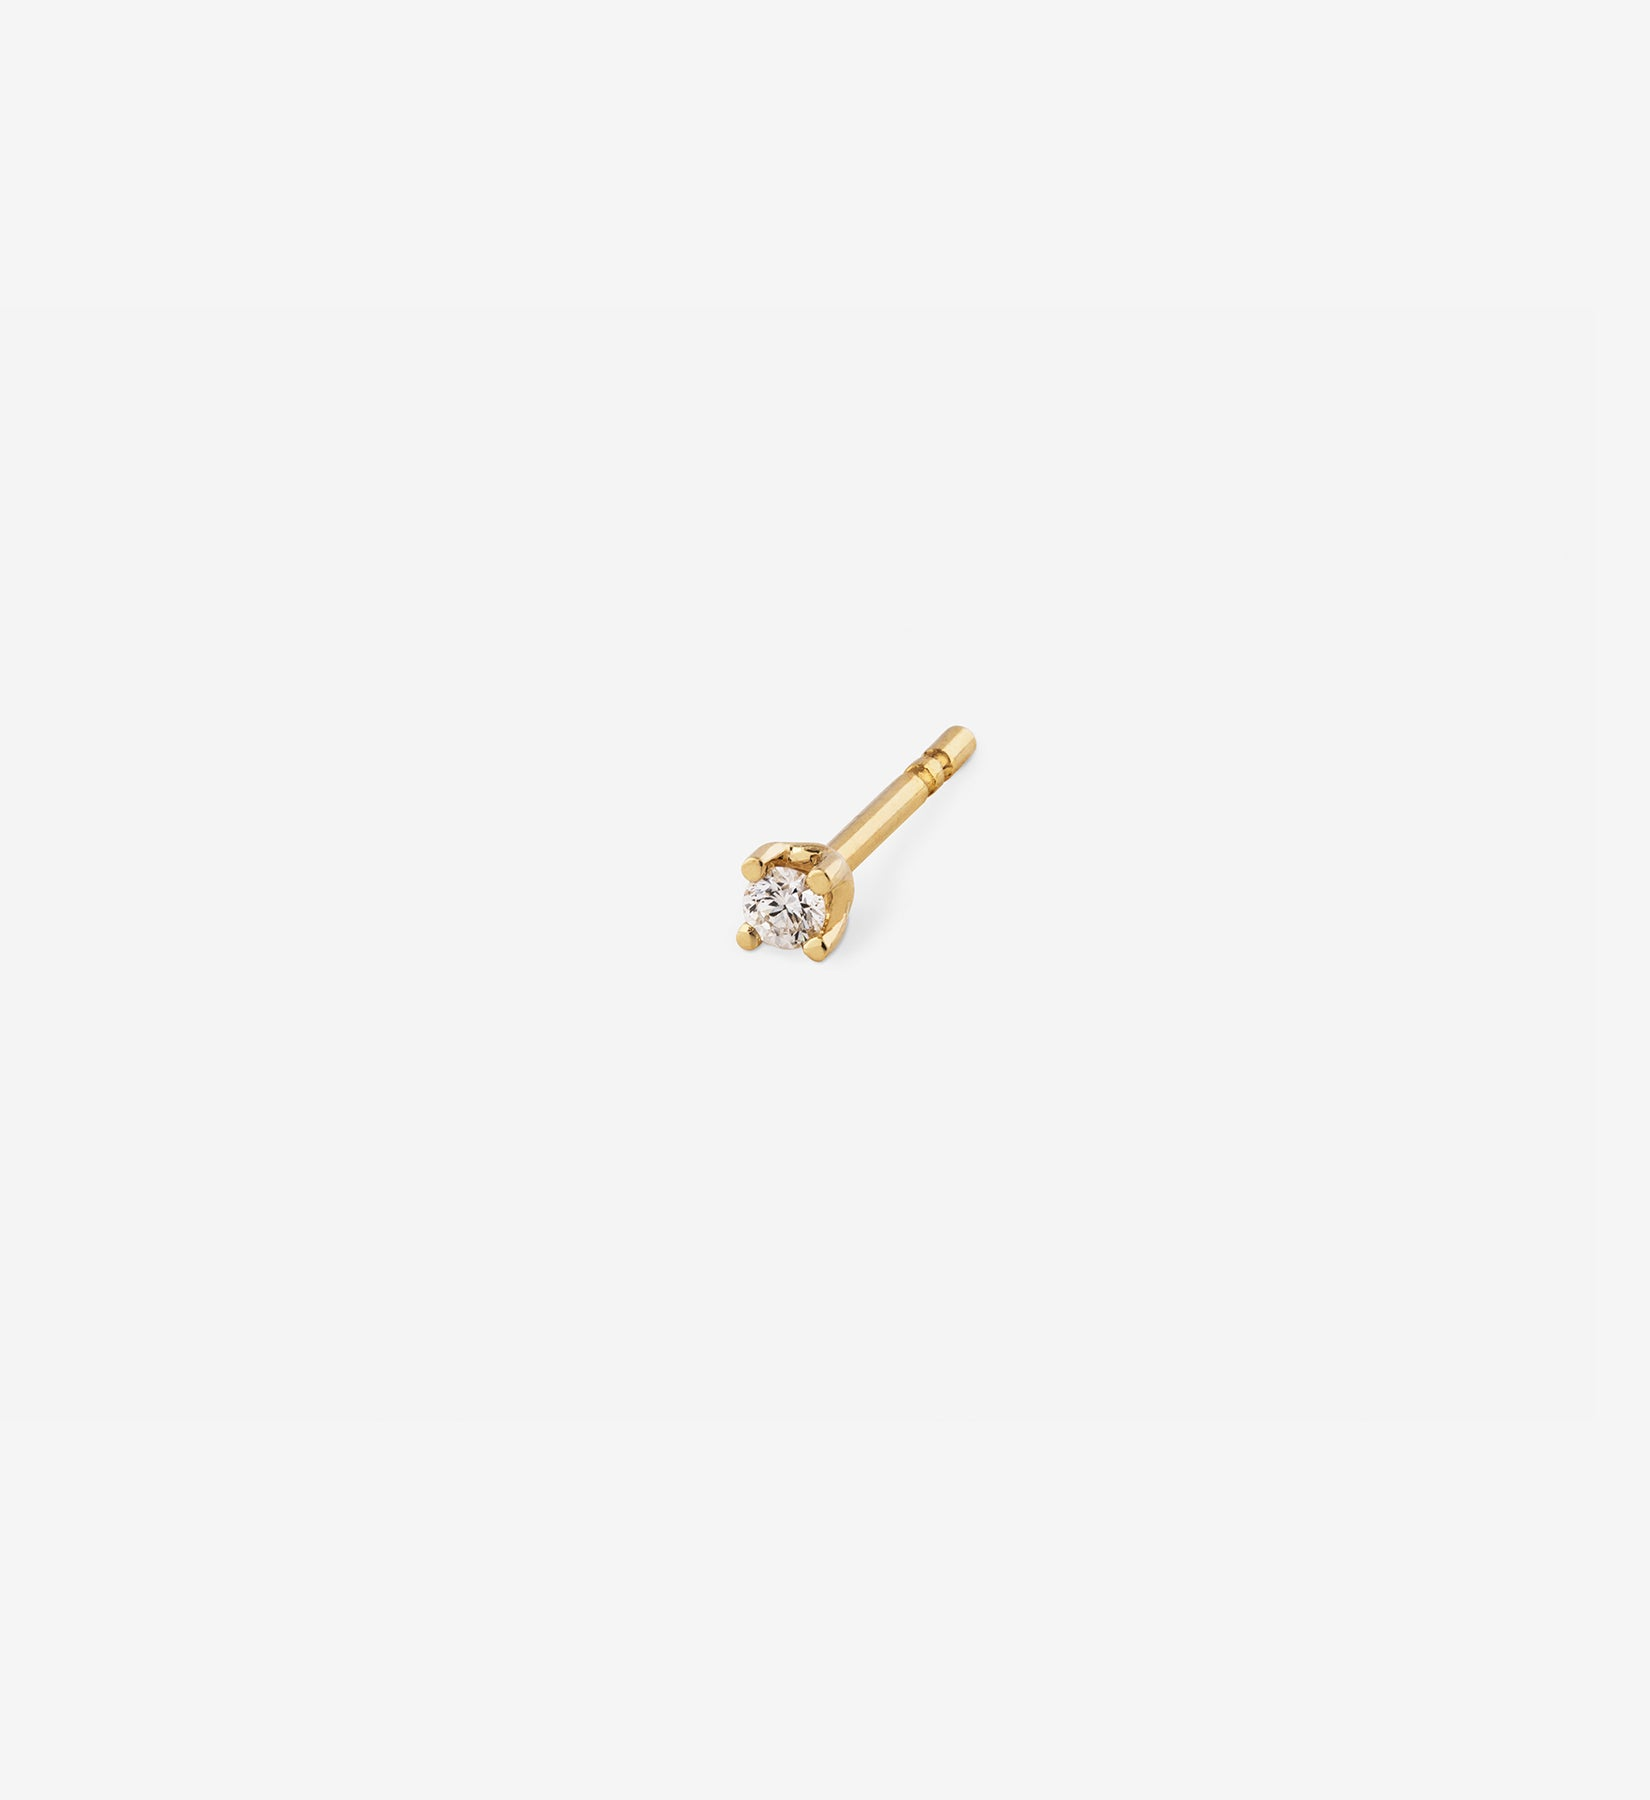 Diamond Stud 0.04 in 14K Gold - Single